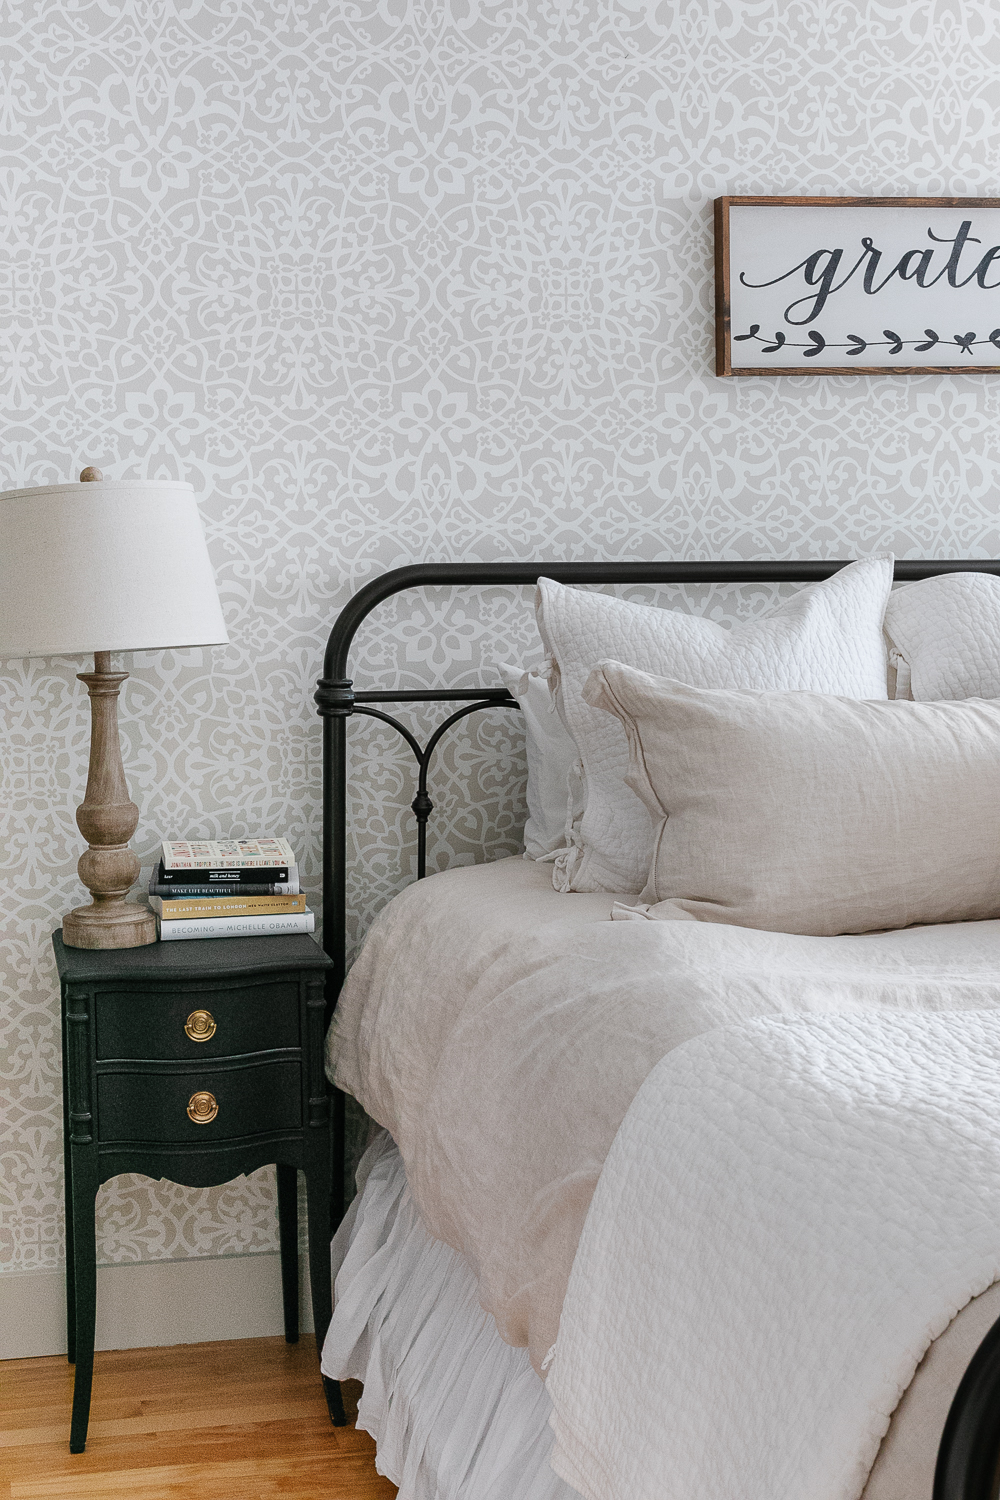 book stack, wood lamp, iron bed, black night table, wallpaper, stencilled wall, linen bedding